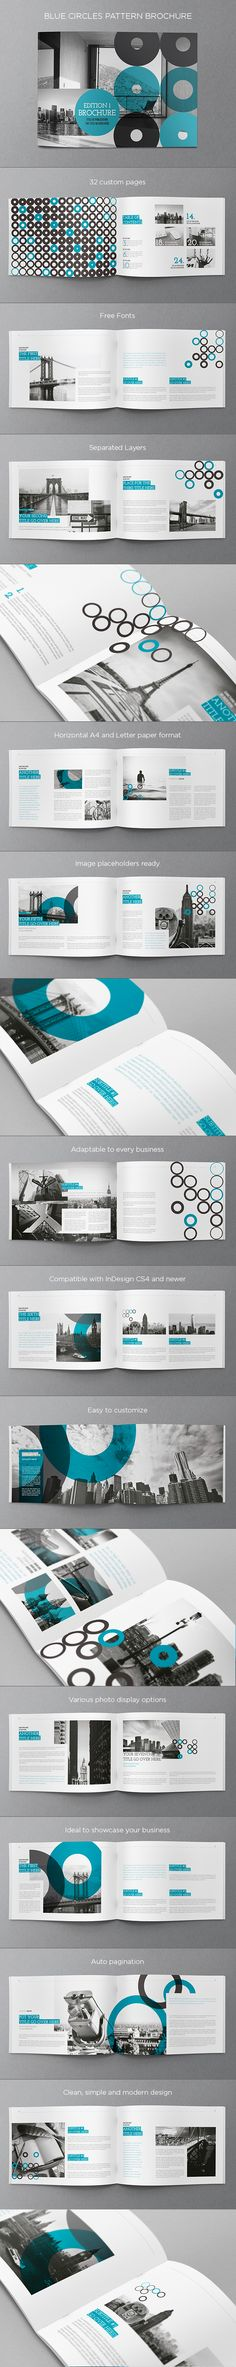 Blue Circles Pattern Brochure. Download here: http://graphicriver.net/item/blue-circles-pattern-brochure/14060572?ref=abradesign